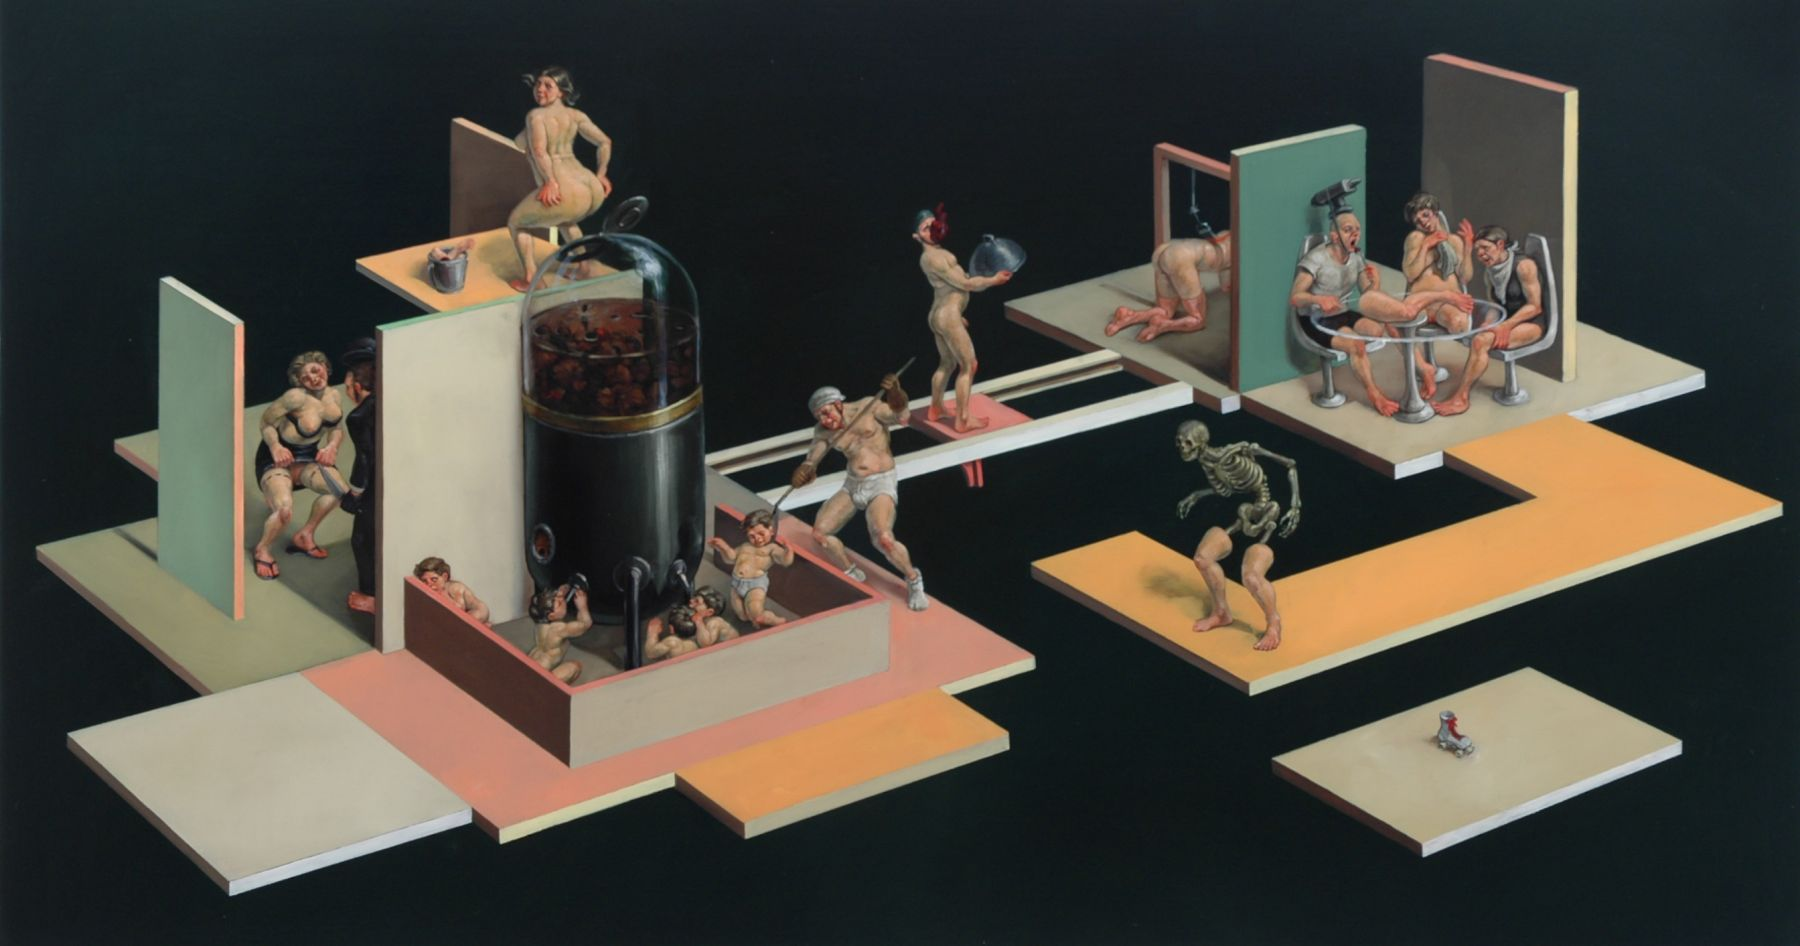 ERIK SANDBERG Transition 2006, oil on wood panel, 30 x 45 x 3 inches.